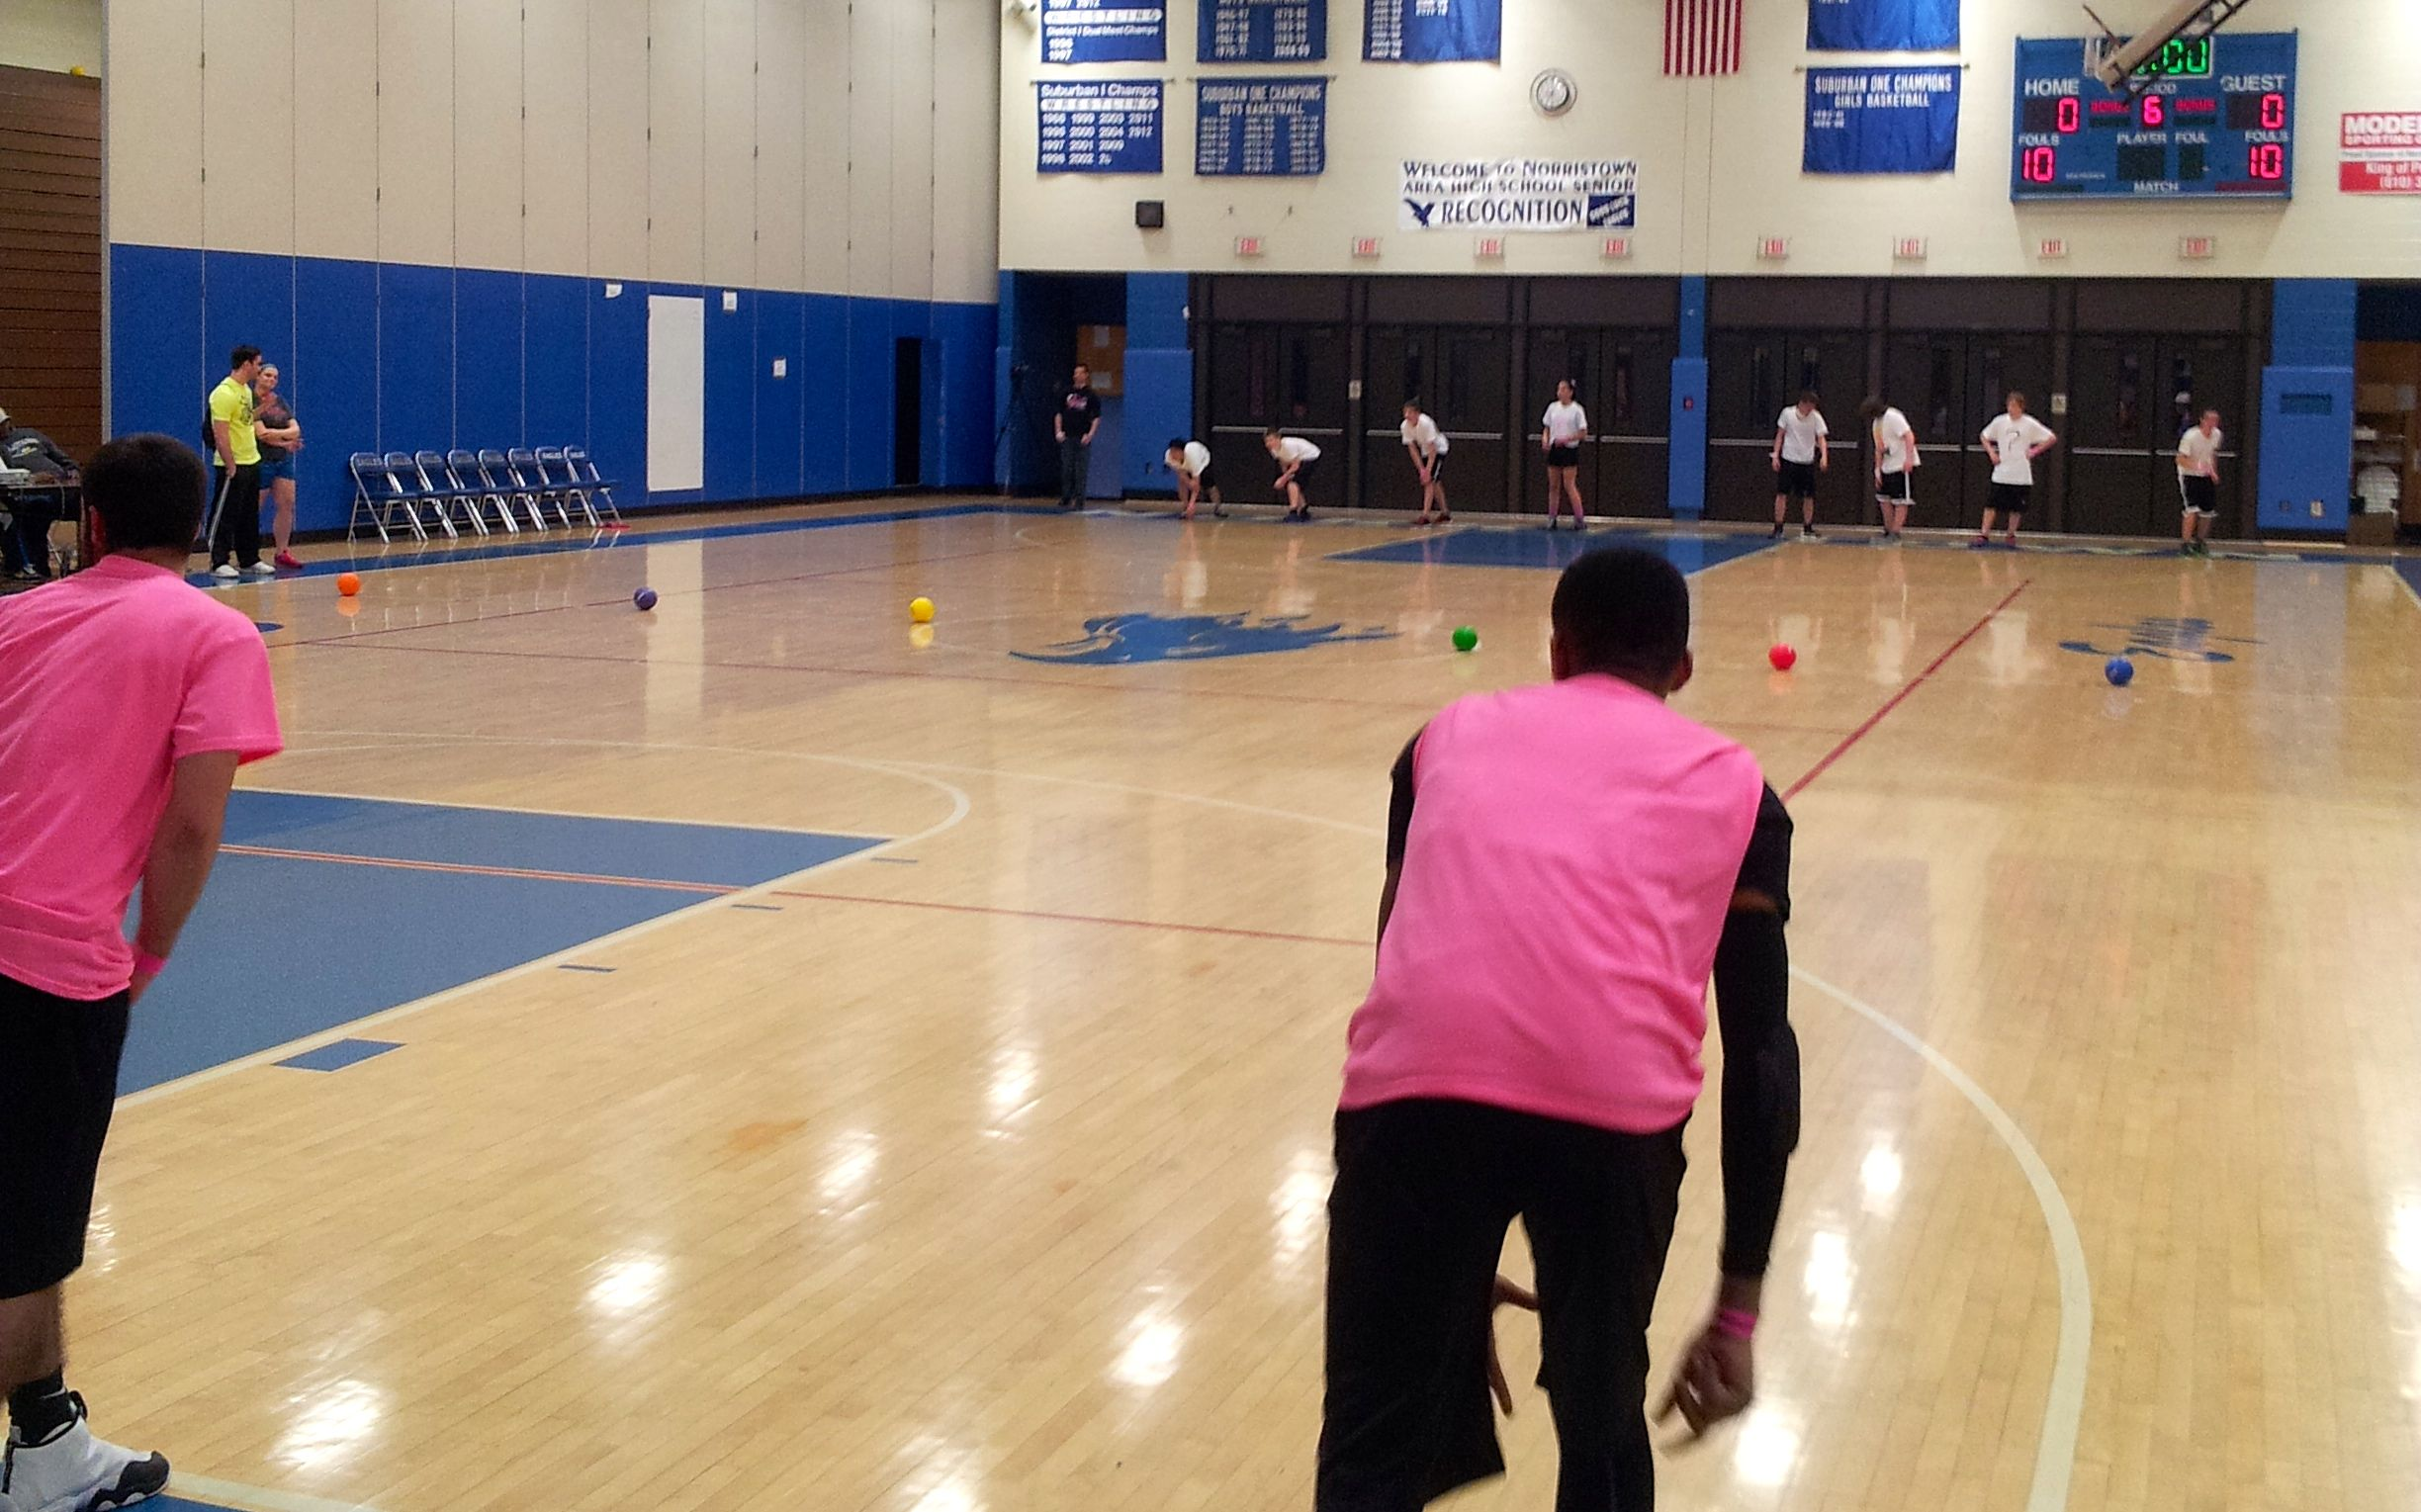 DECA Dodge Ball 2014 was a Hit! - DECA Direct - March 2014